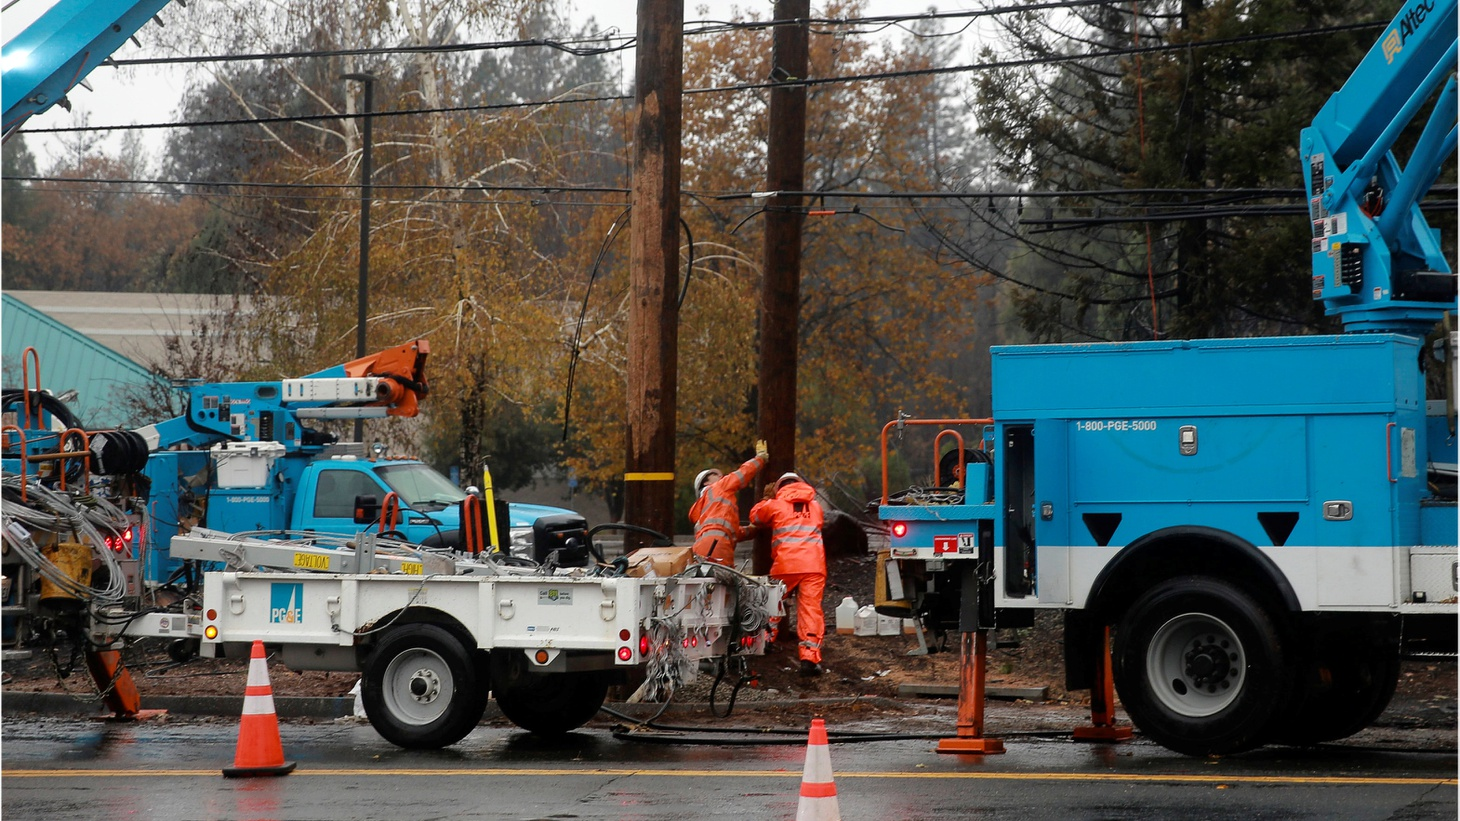 PG&E works on power lines to repair damage caused by the Camp Fire in Paradise, California, U.S. November 21st, 2018.